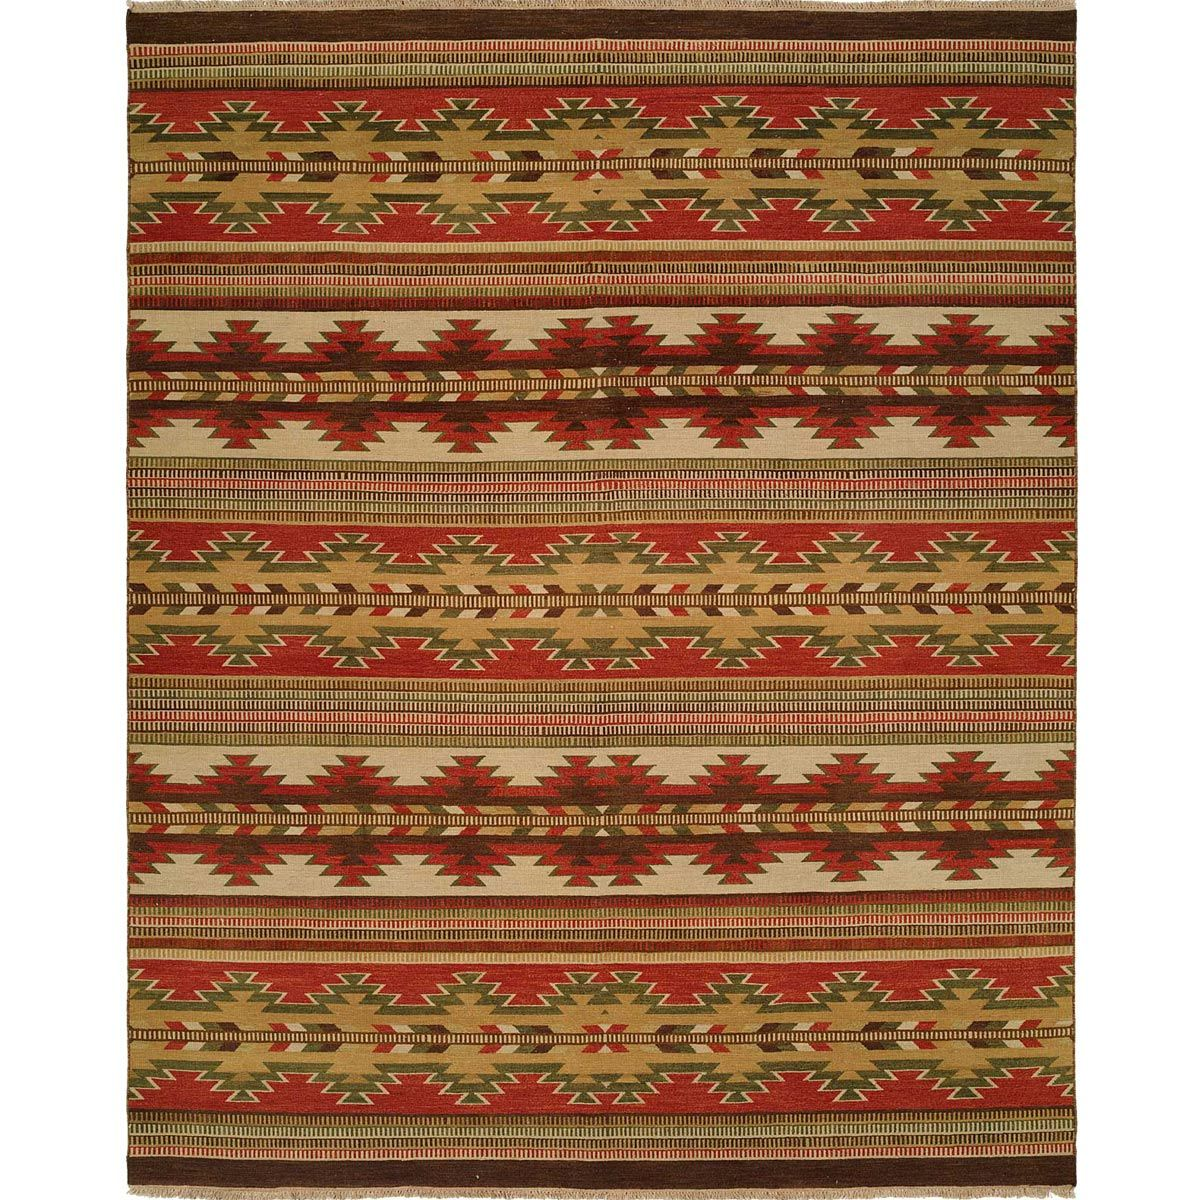 Sunburst Bands Rug - 4 x 10